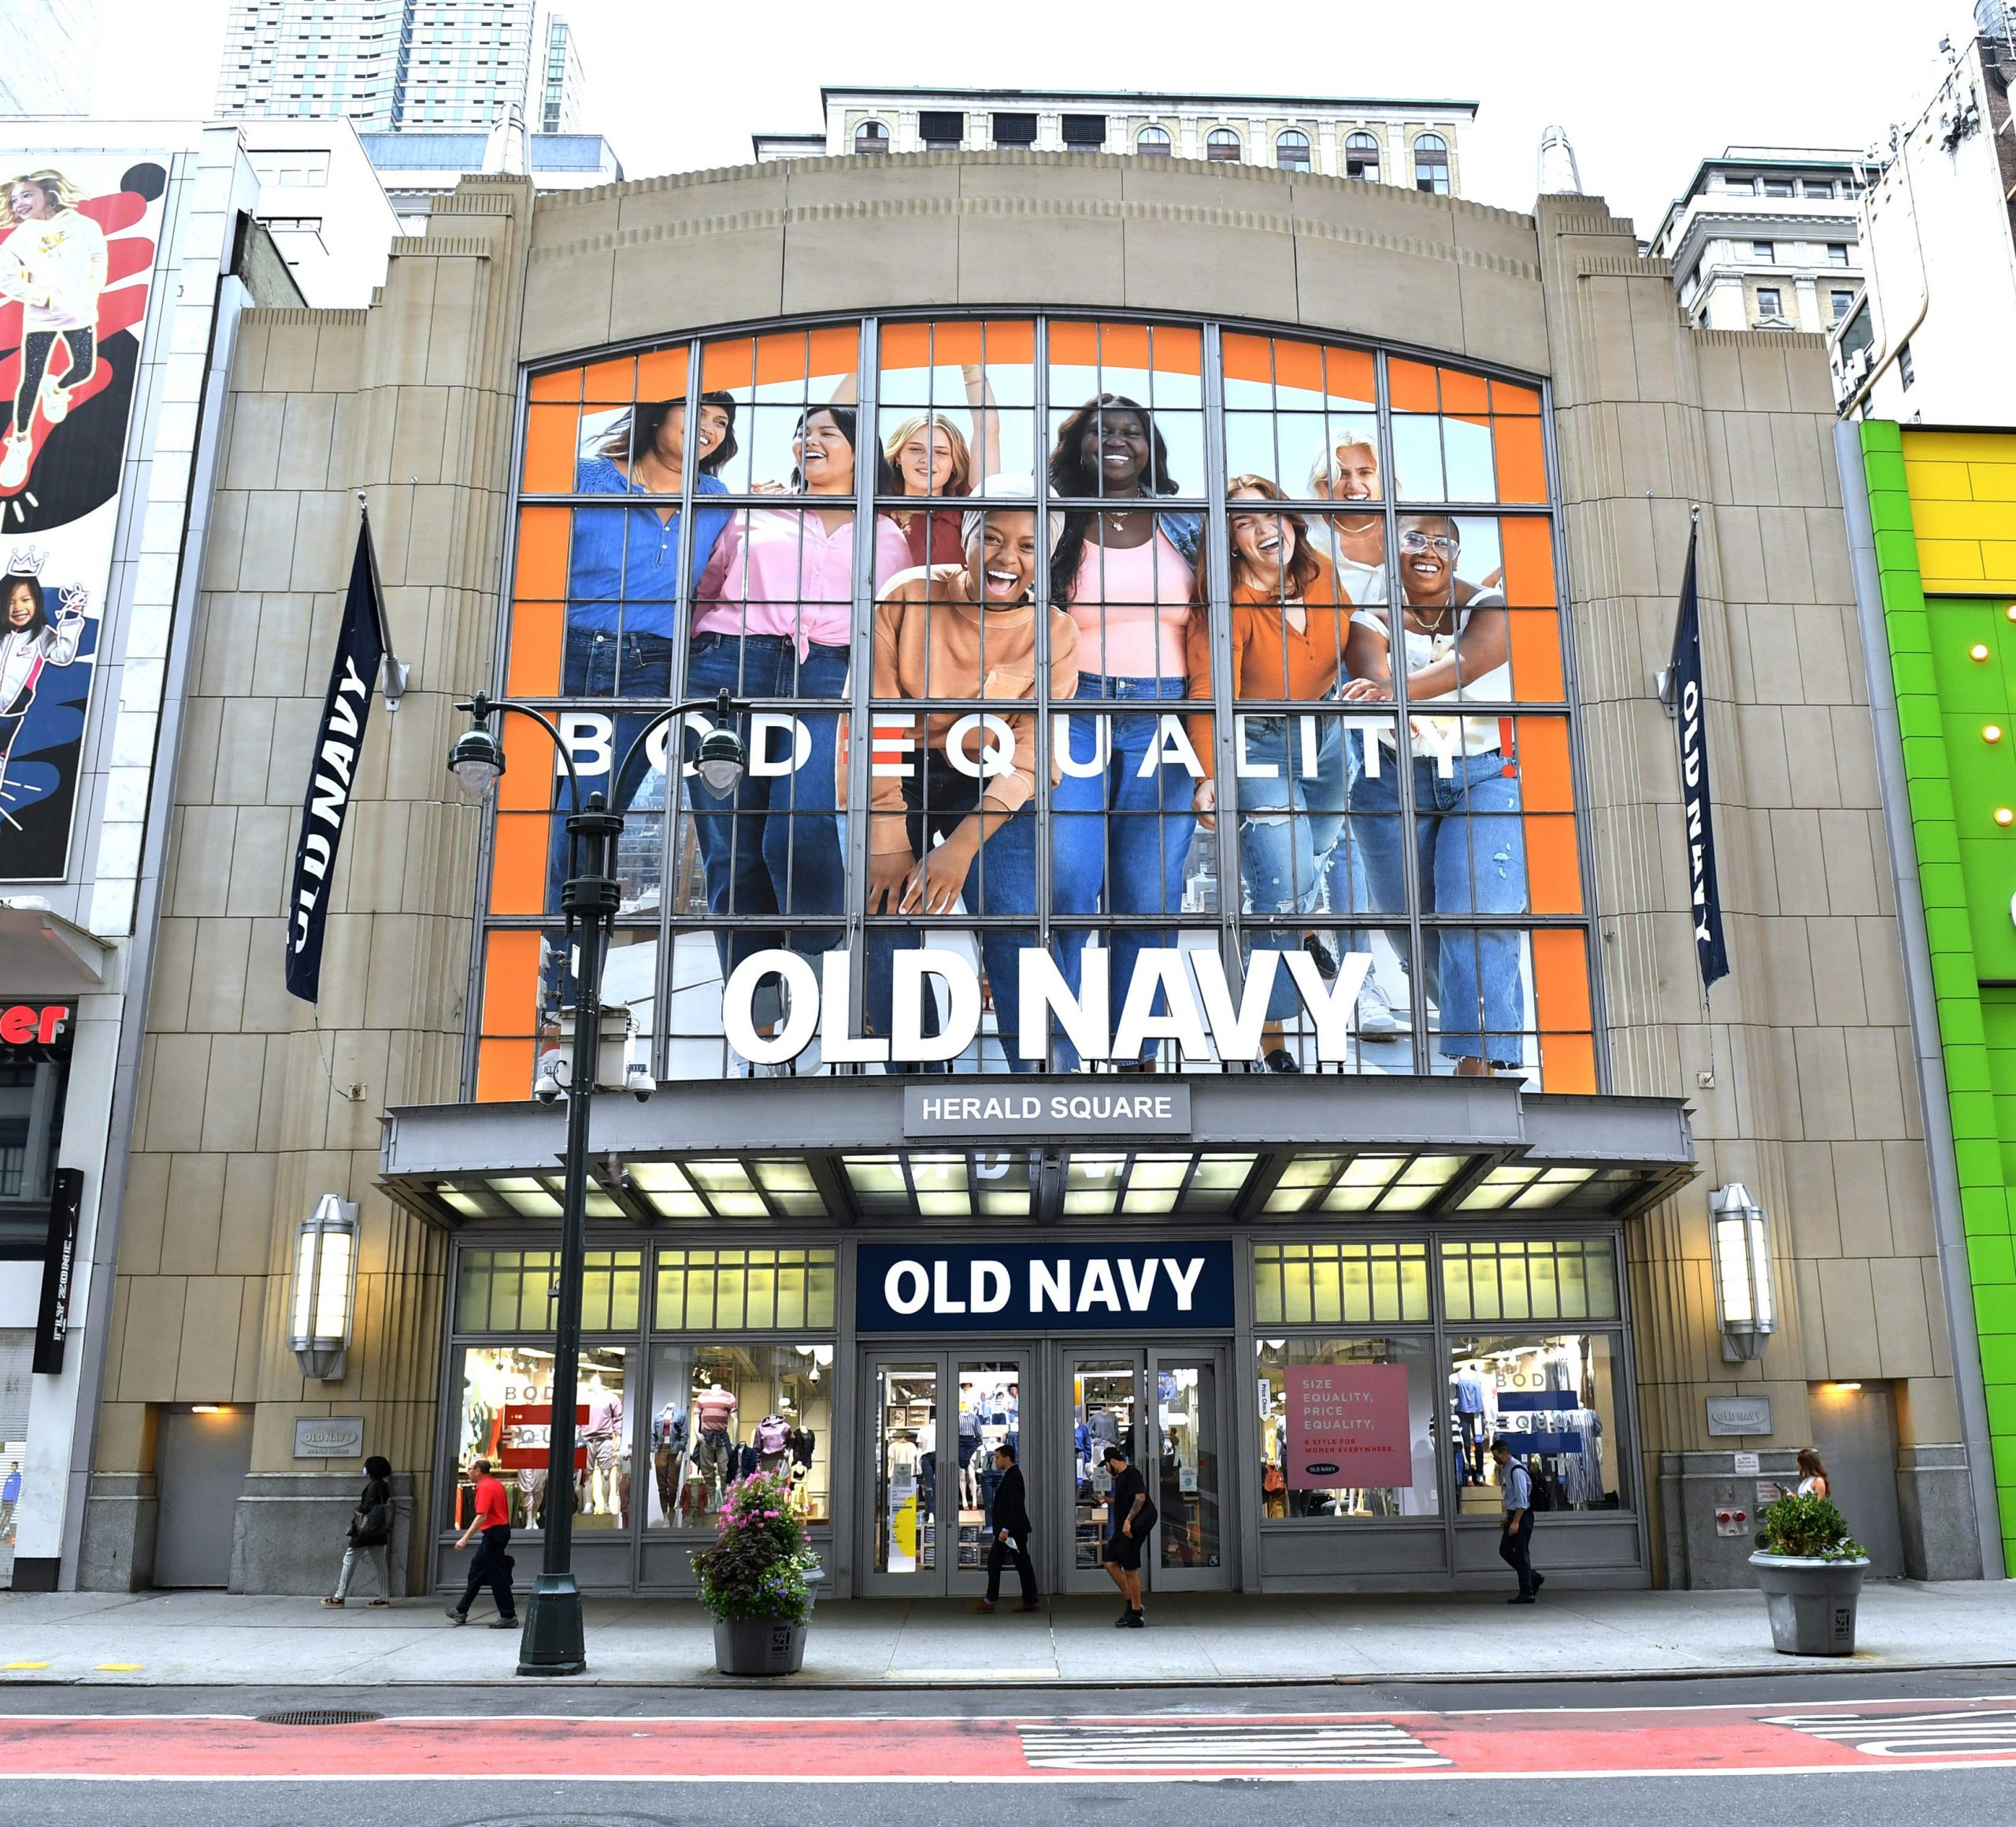 Old Navy changing sizes for women's clothes to make them more inclusive with 'BODEQUALITY' launch